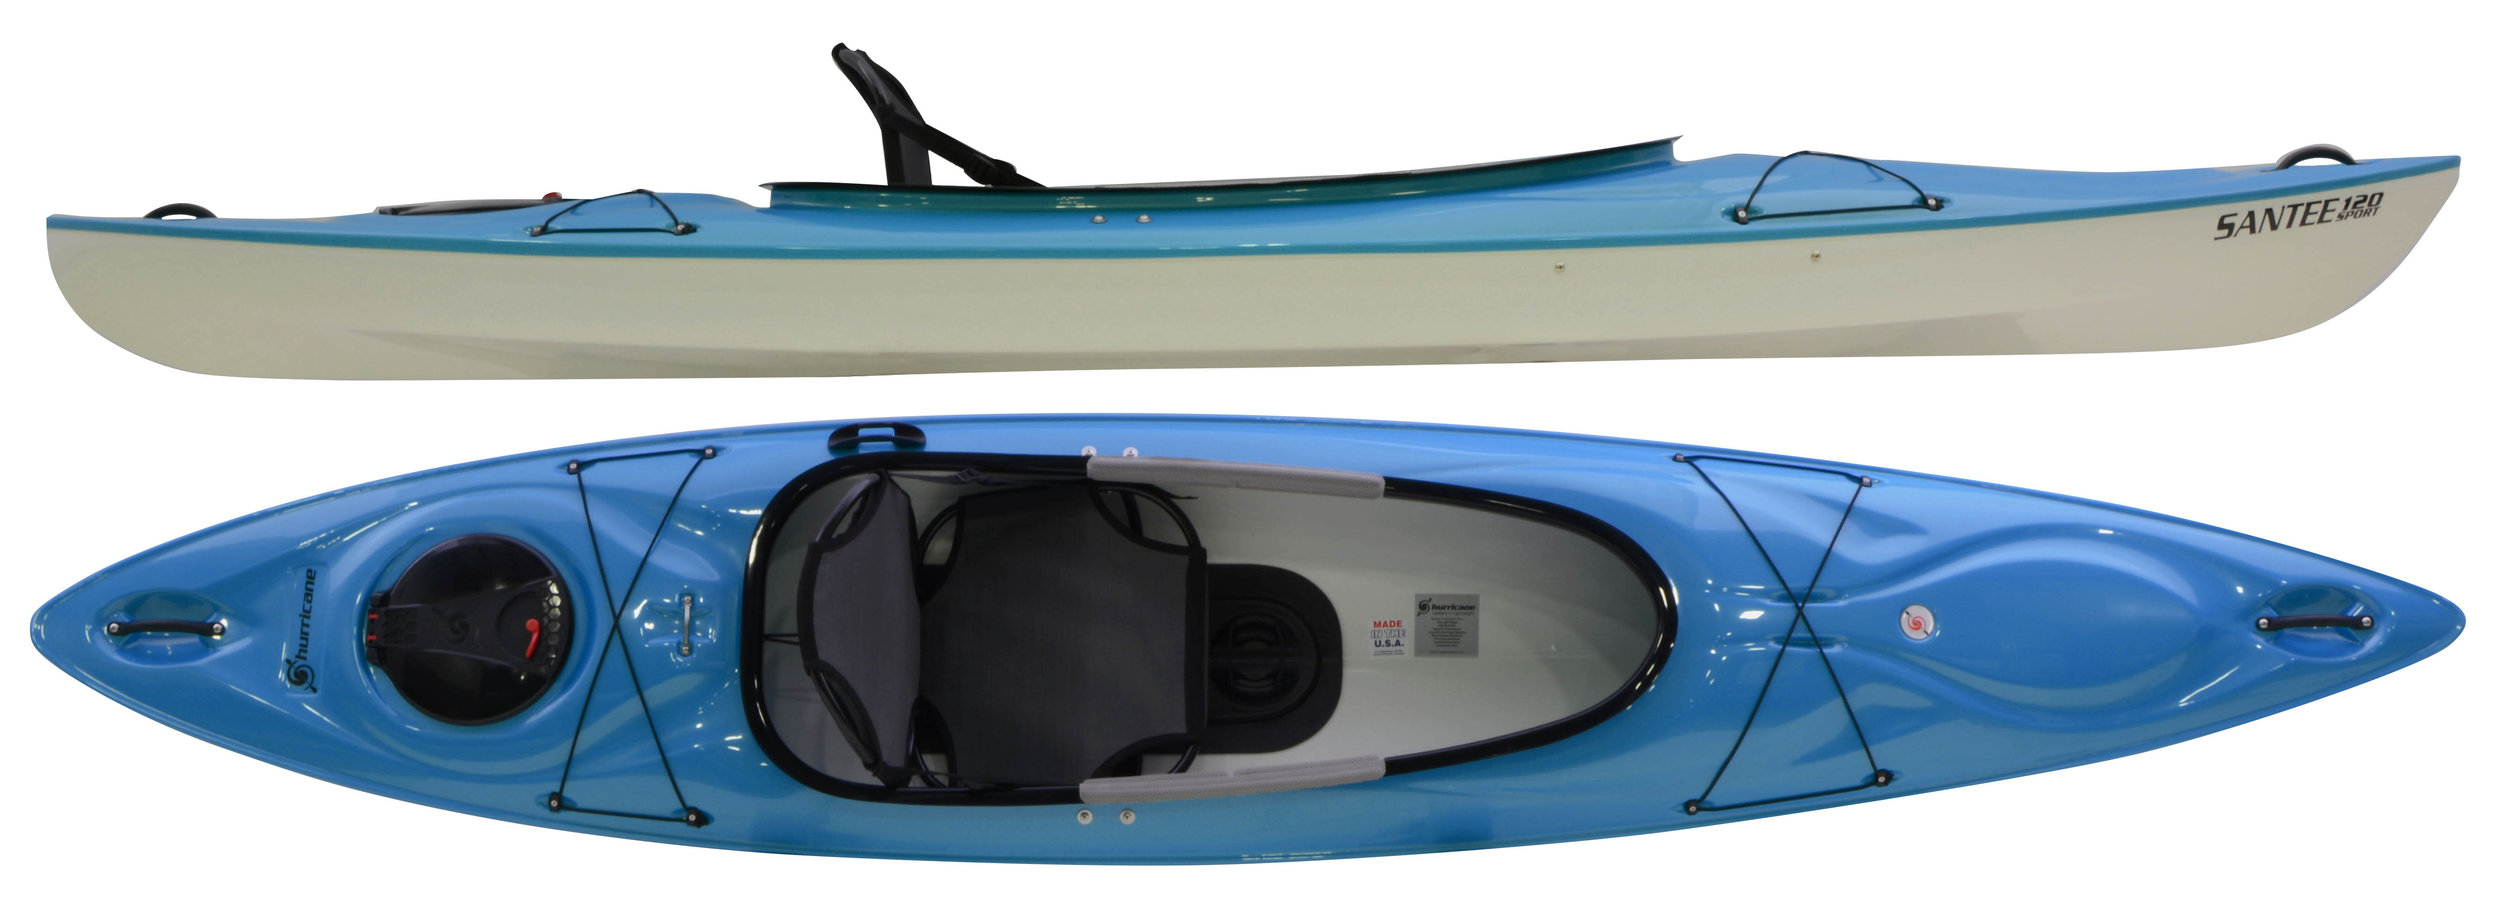 """Santee 120 Sport Ultimate:  Twelve feet of super stable, super lightweight kayak with excellent tracking, stylish aesthetics and - new for 2017 – a First Class Frame Seat for ultimate comfort. Designed with a hard-chined hull for superior performance and a generous sport cockpit for easy entry and exit, the Santee 120 Sport is an amazing recreational kayak. At 12' long and 28"""" wide, the Santee 120 Sport is generous in fit, high on confidence, easy on the back, and kind to the wallet."""